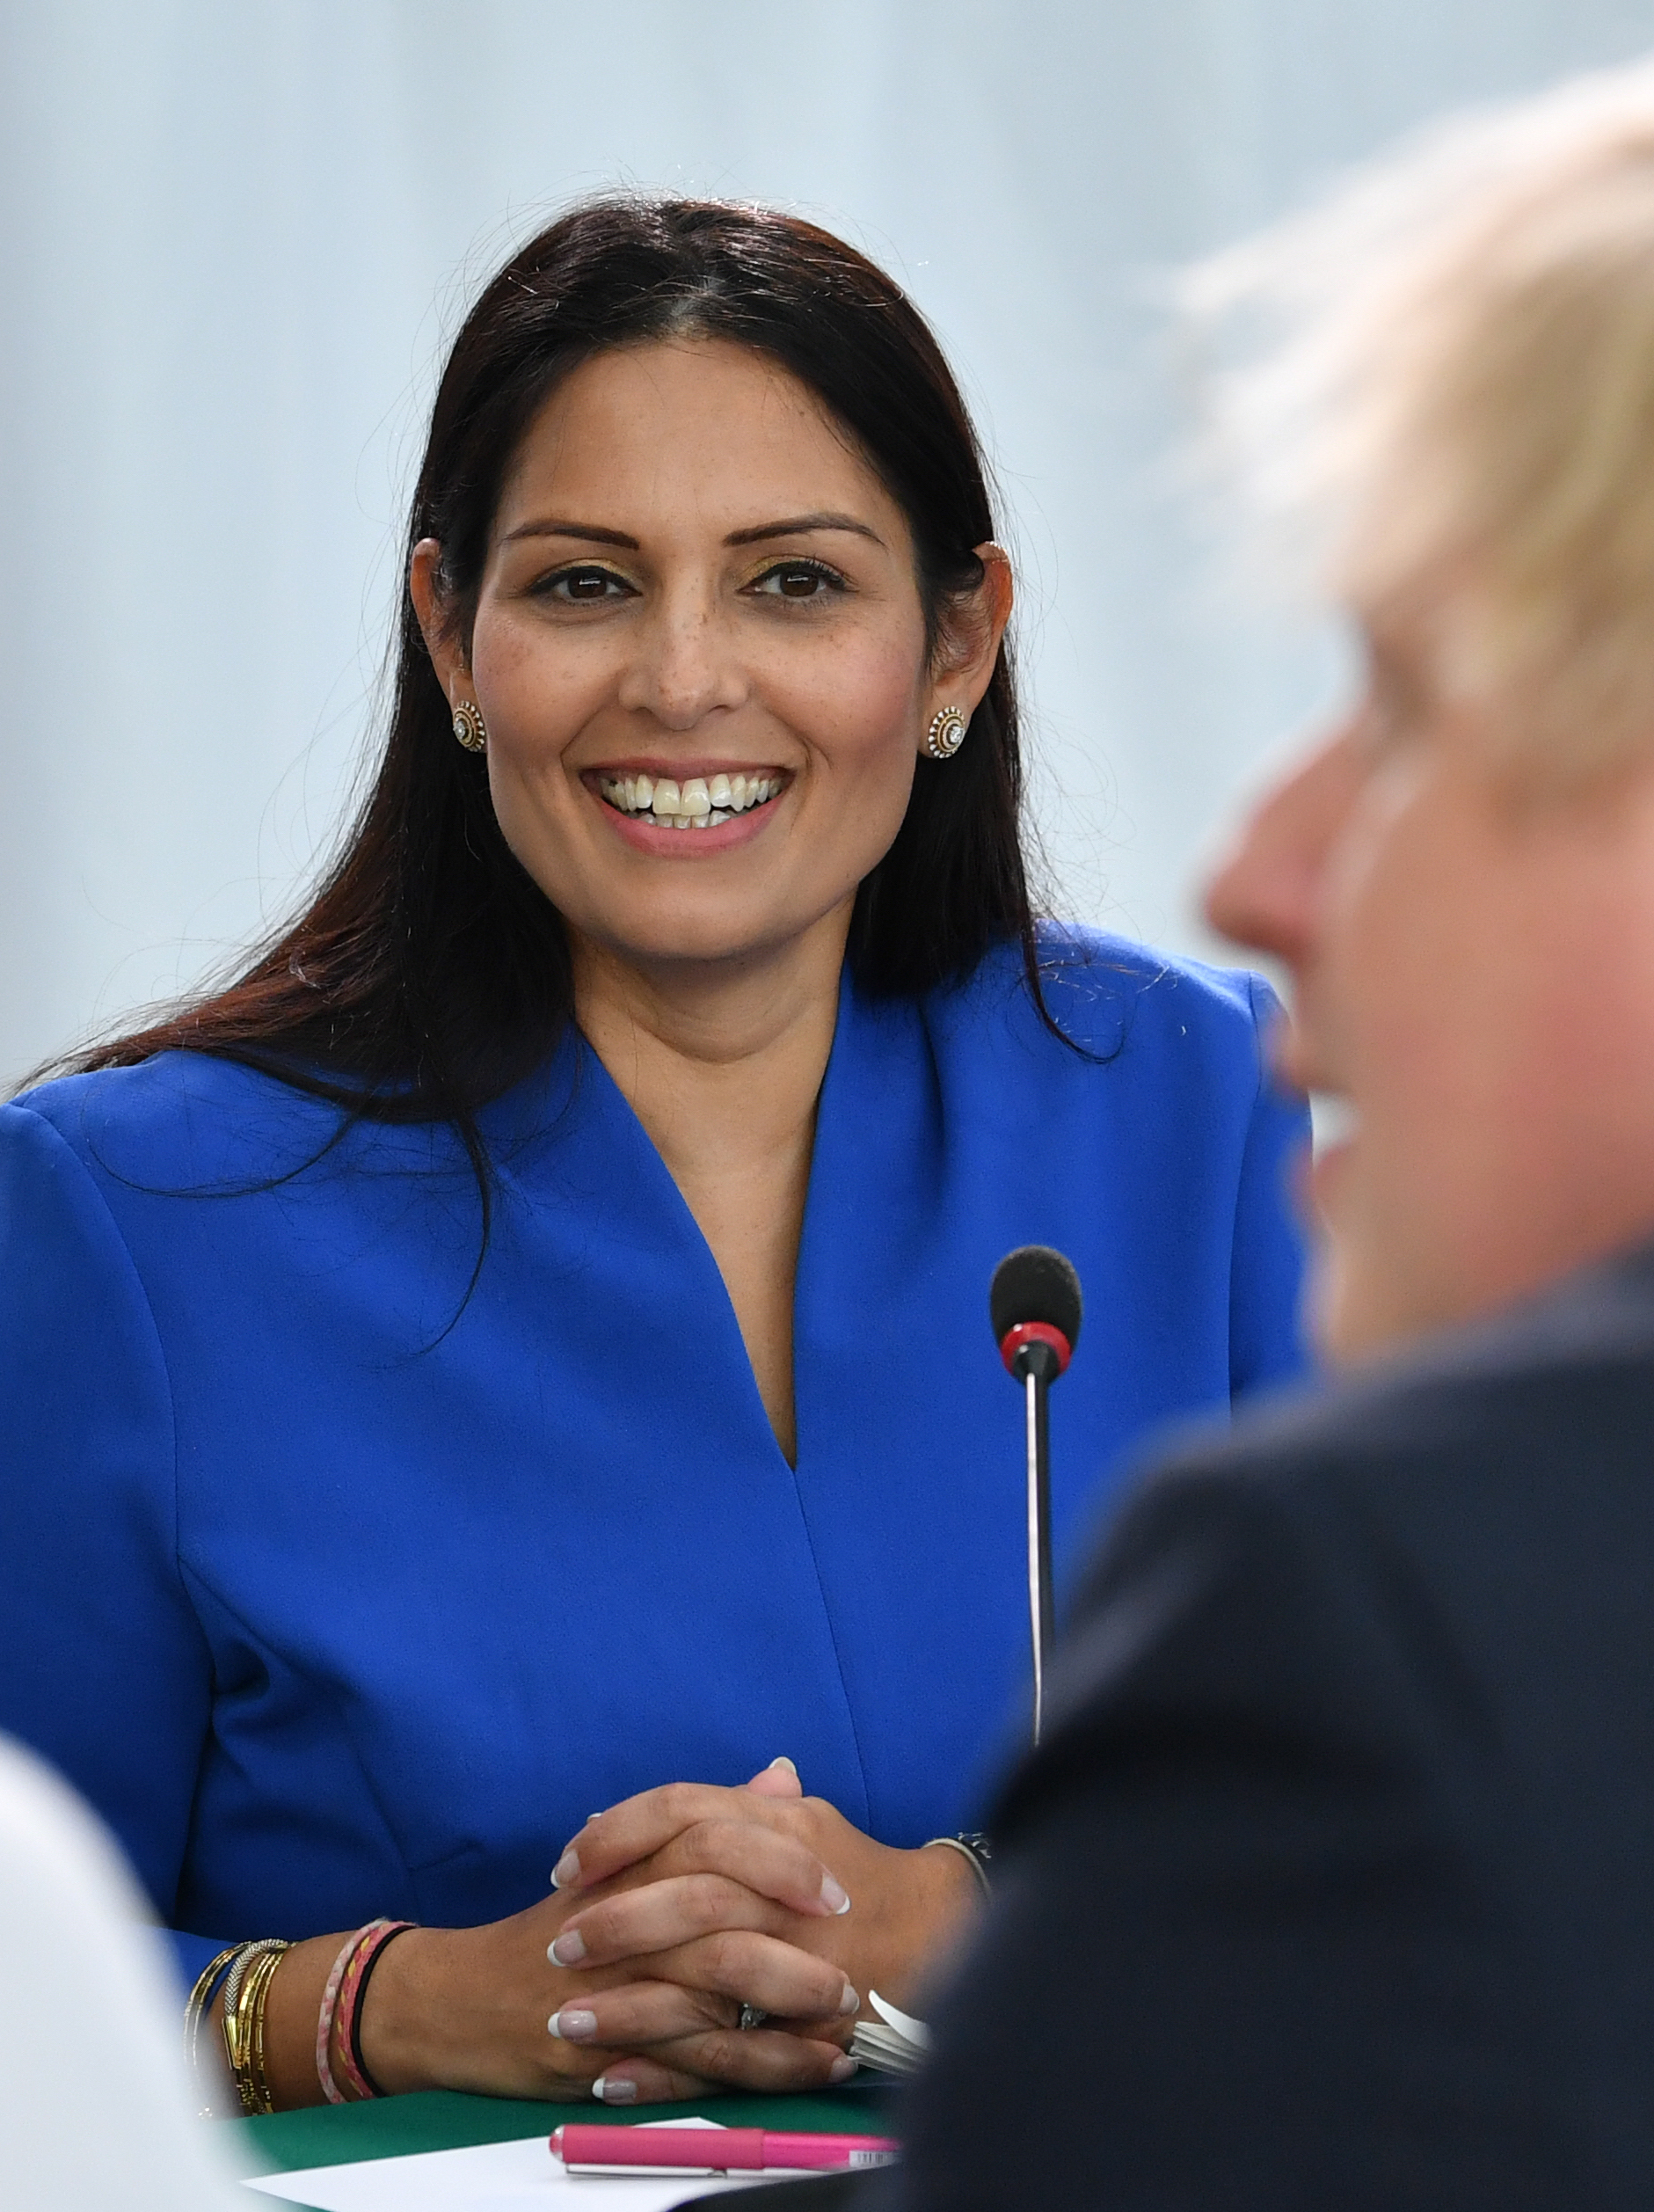 Home Secretary Priti Patel Prime Minister Boris Johnson chairs a cabinet meeting on Jan. 31, 2020 in Sunderland, United Kingdom.